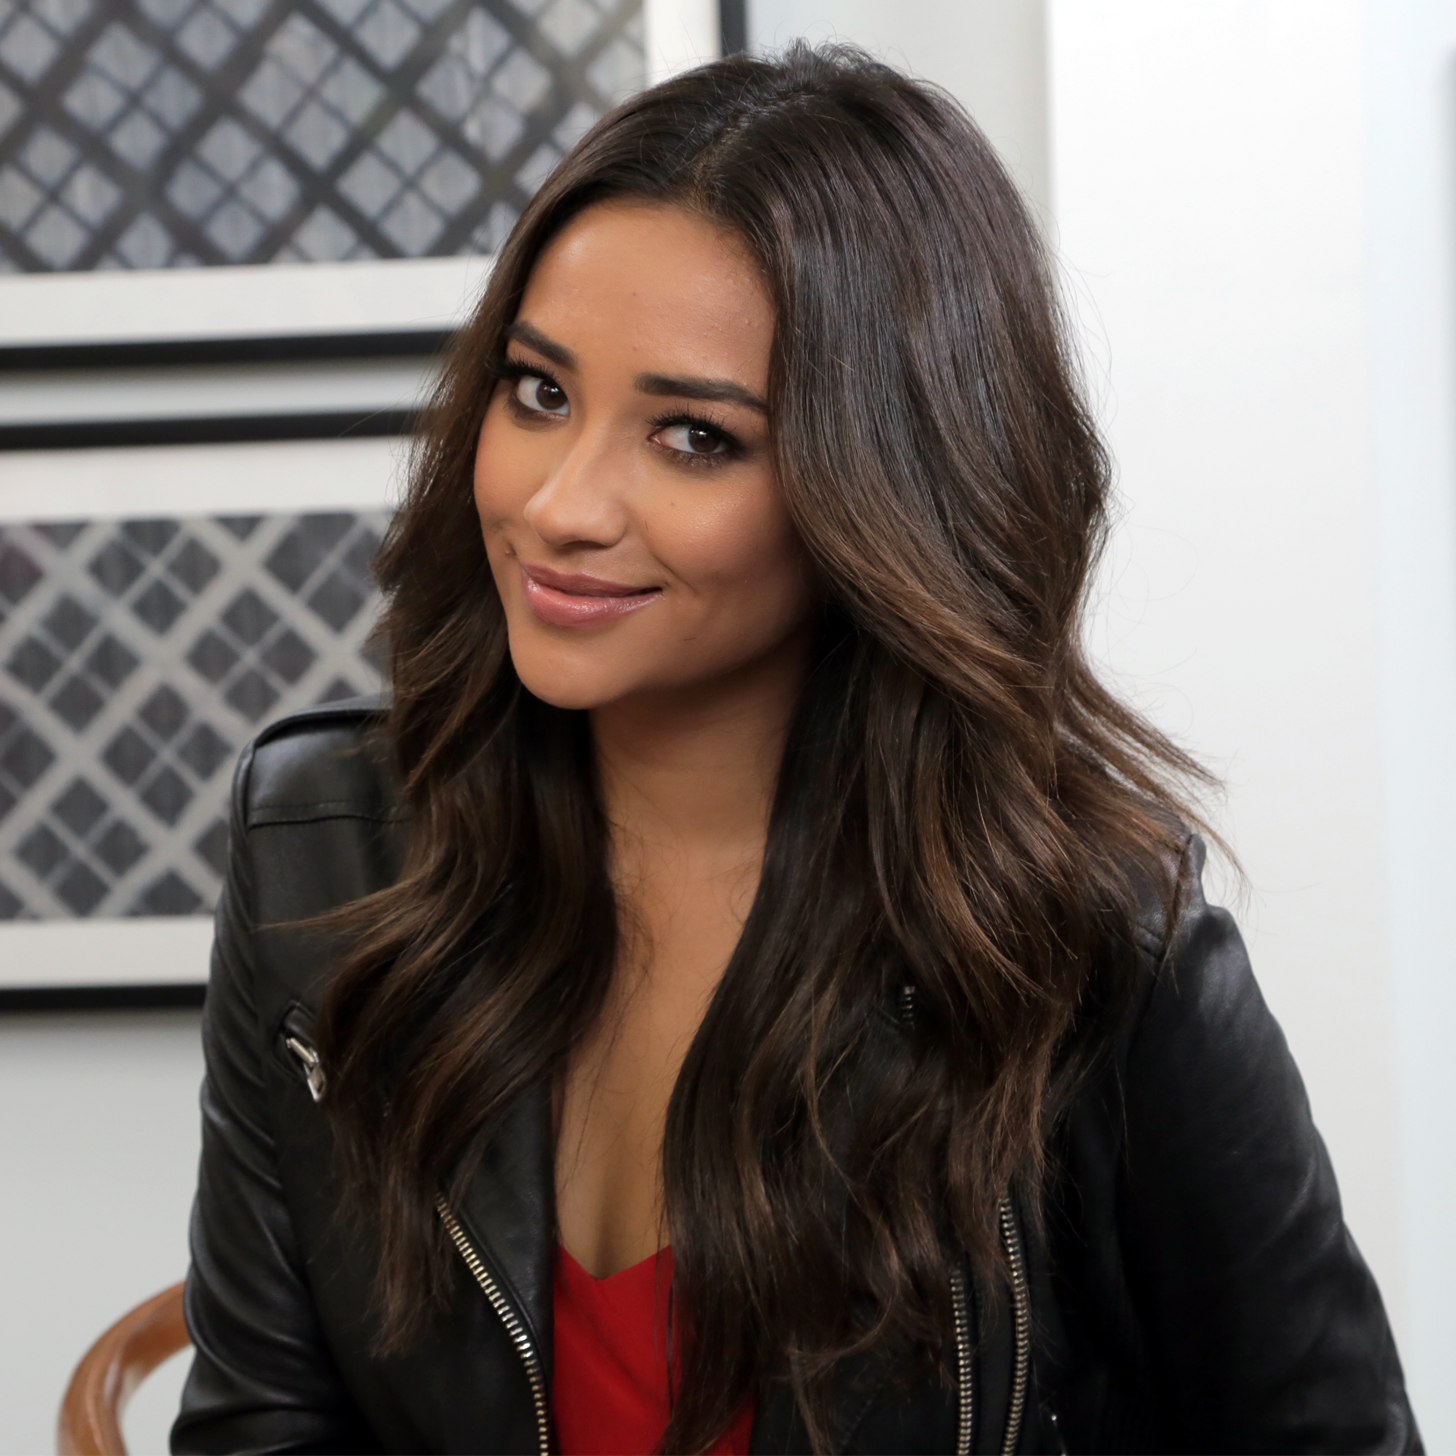 Shay Mitchell earned a  million dollar salary, leaving the net worth at 2 million in 2017